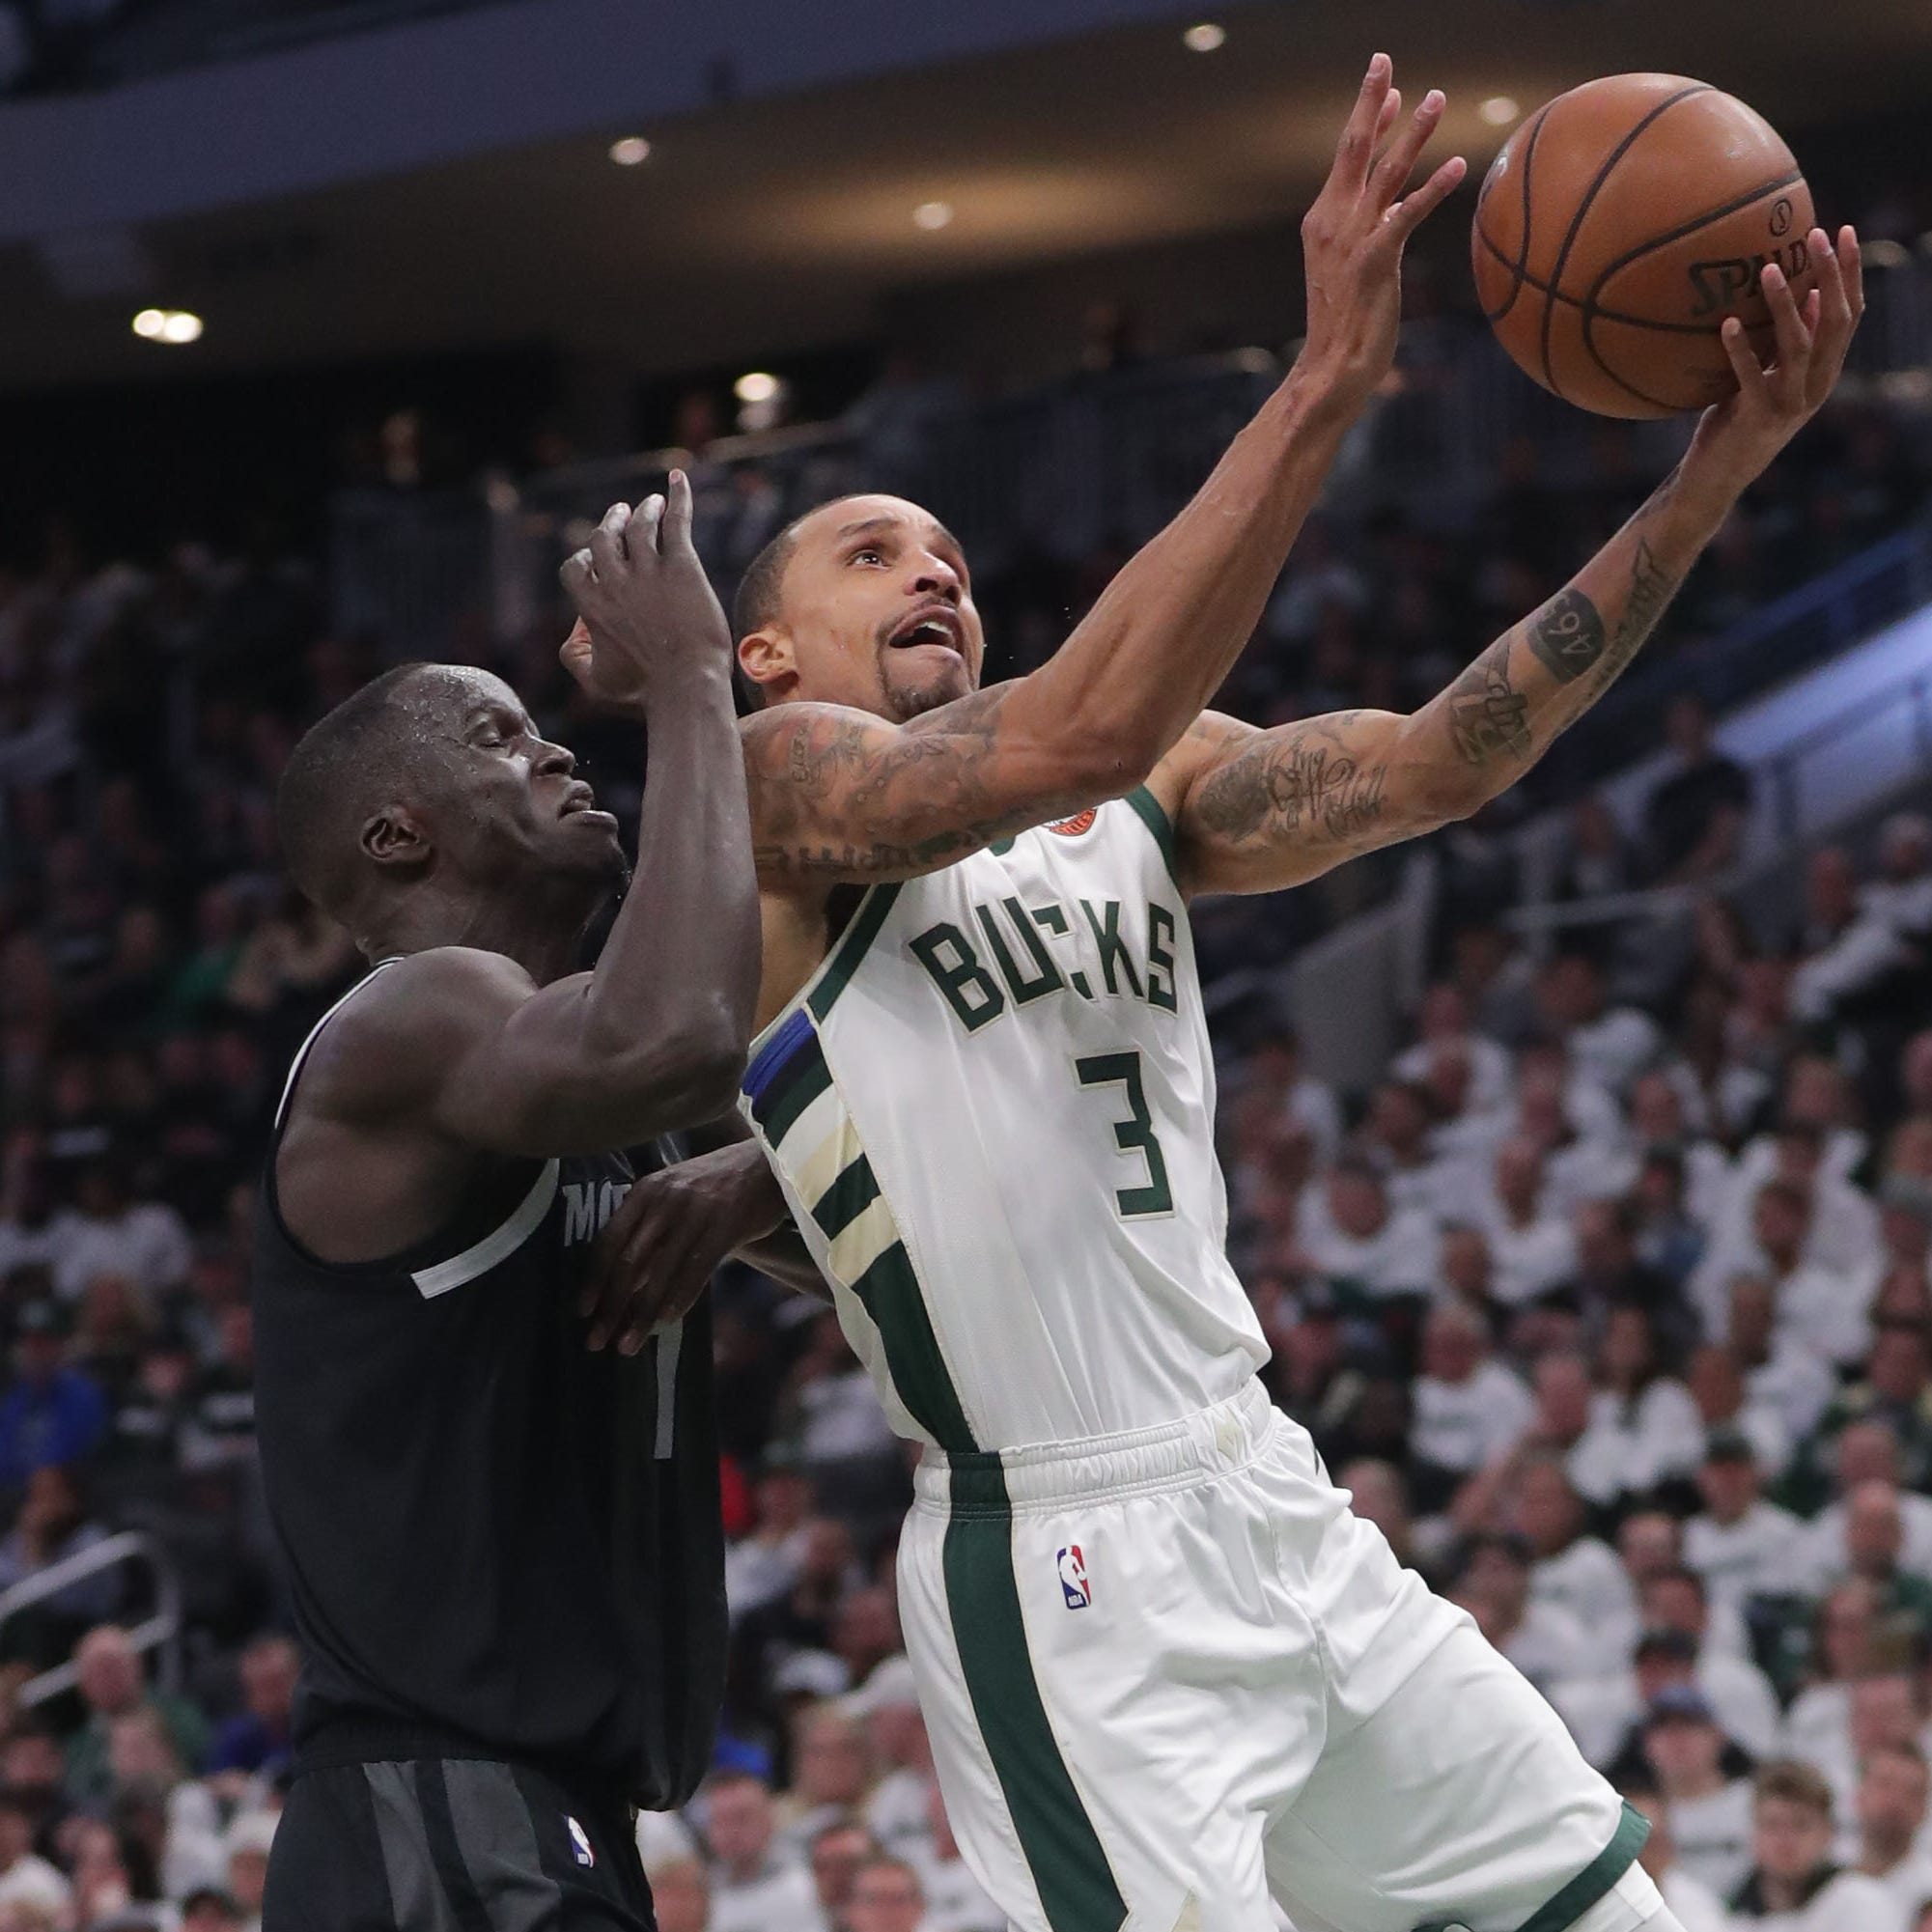 What to expect when the Bucks take their show on road in the playoffs